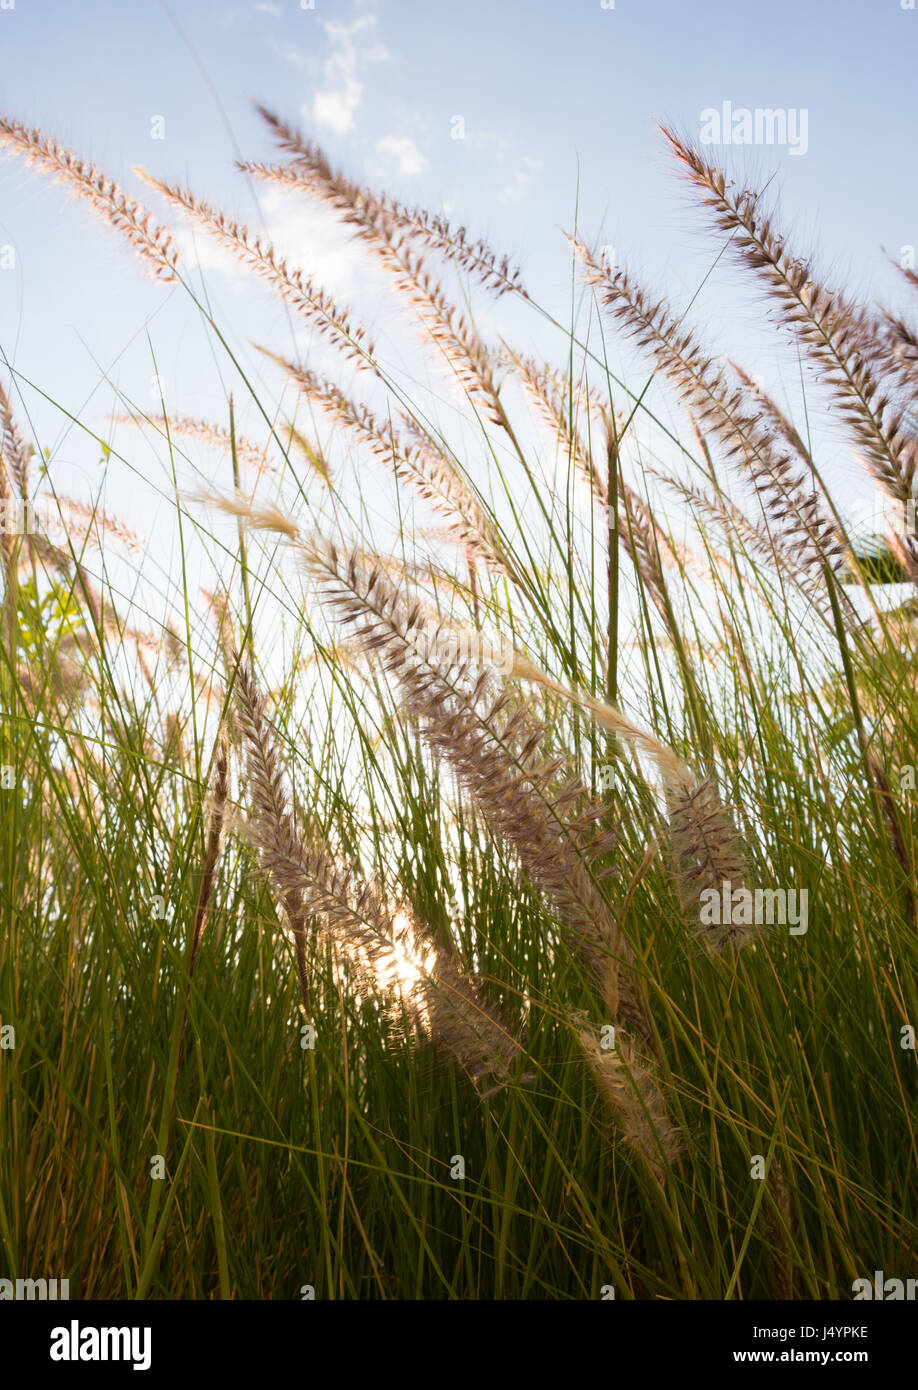 Close up of back lit grass with green blades and reddish brown feathery seed heads waving in the breeze. Light blue - Stock Image